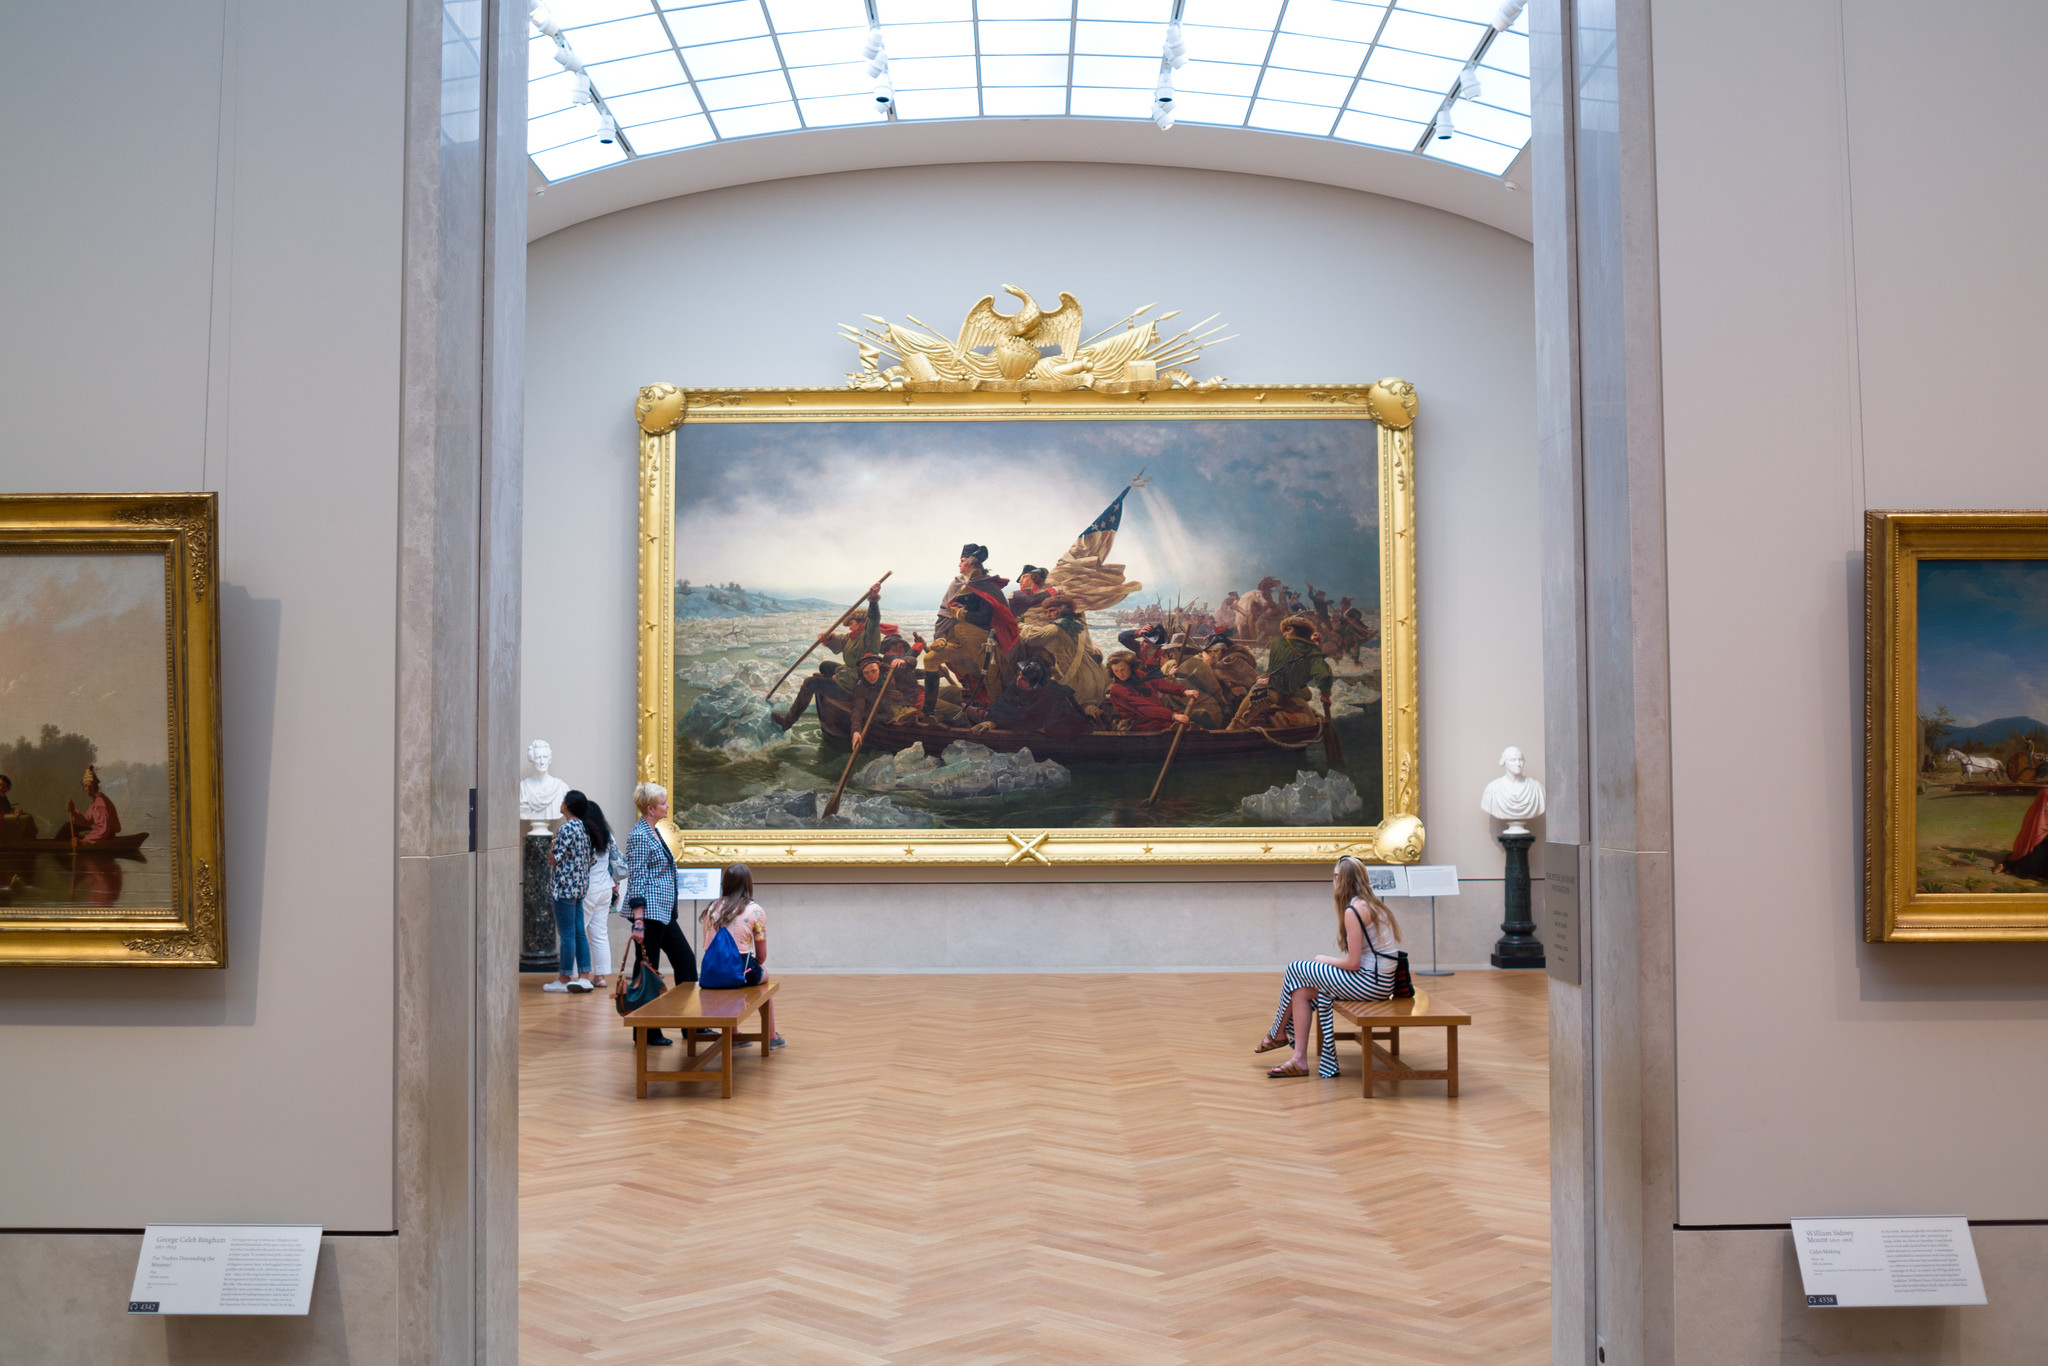 Metropolitan museum of art museum in new york city for Metropolitan mueseum of art